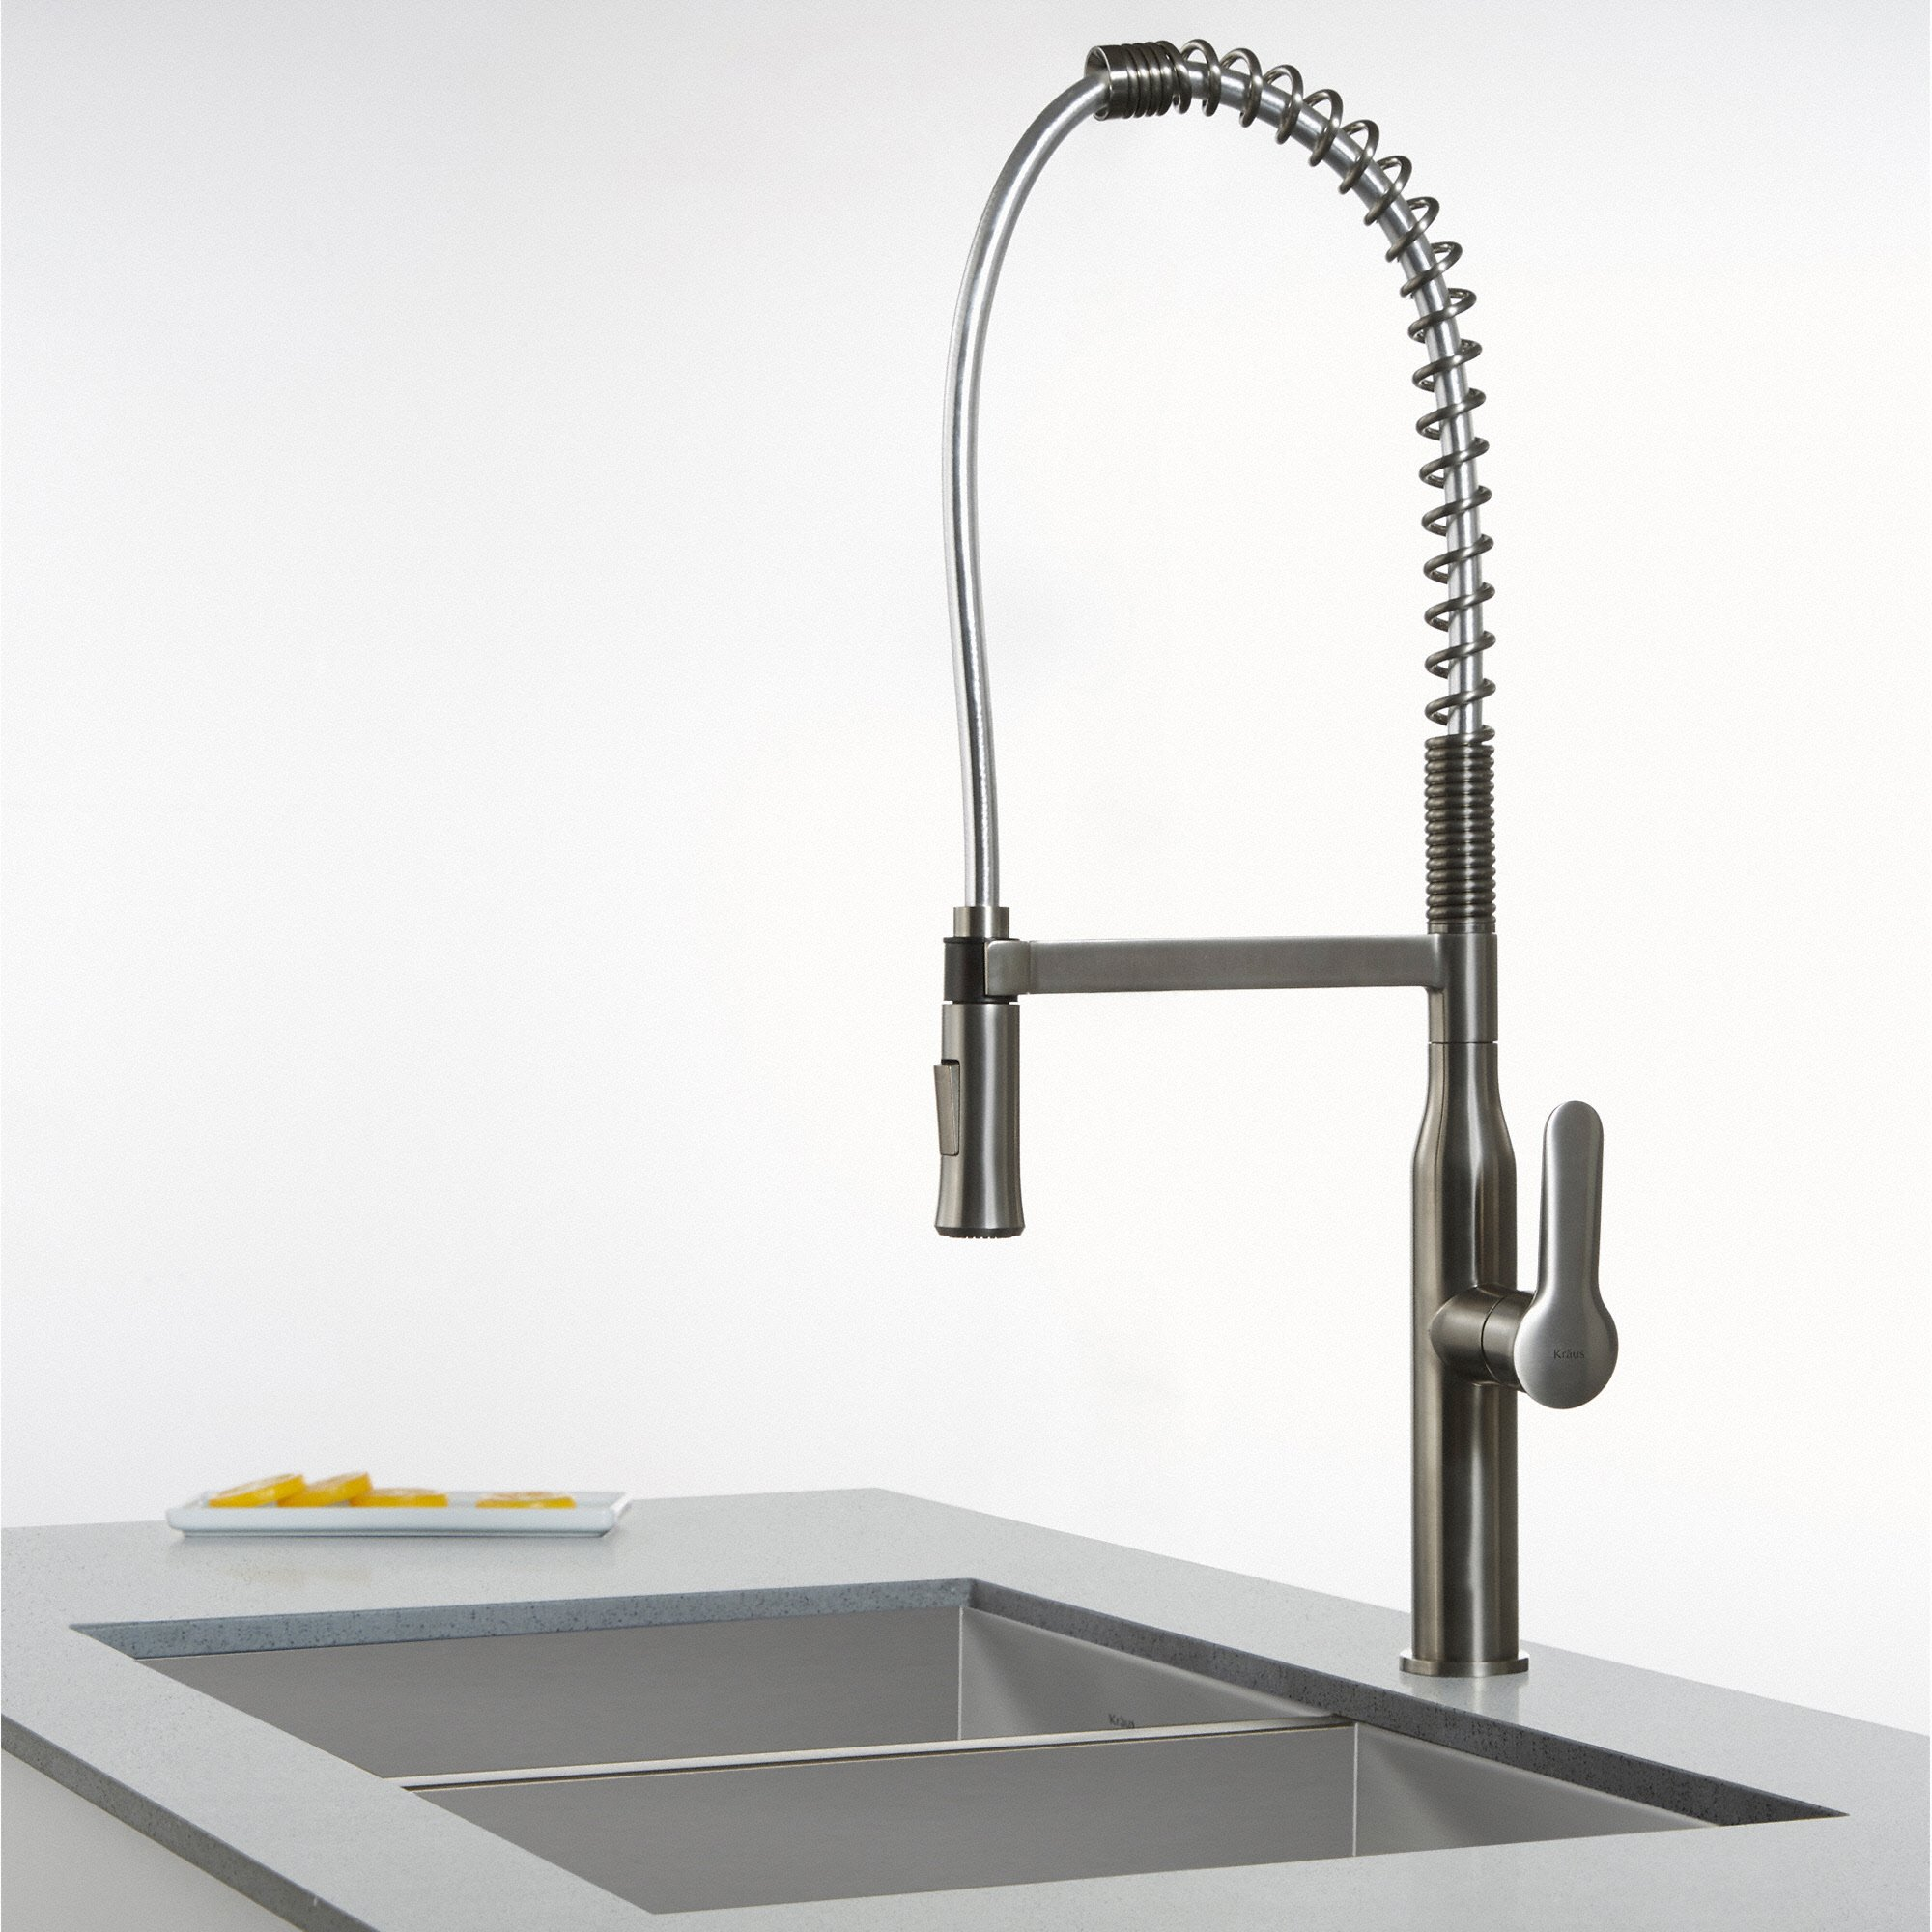 Kraus KPF 1650SS Modern Nola Single Lever Commercial Style Kitchen Faucet,  Stainless Steel   KPF 1650SS U003c Touch On Kitchen Sink Faucets U003c Tools U0026 Home  ...